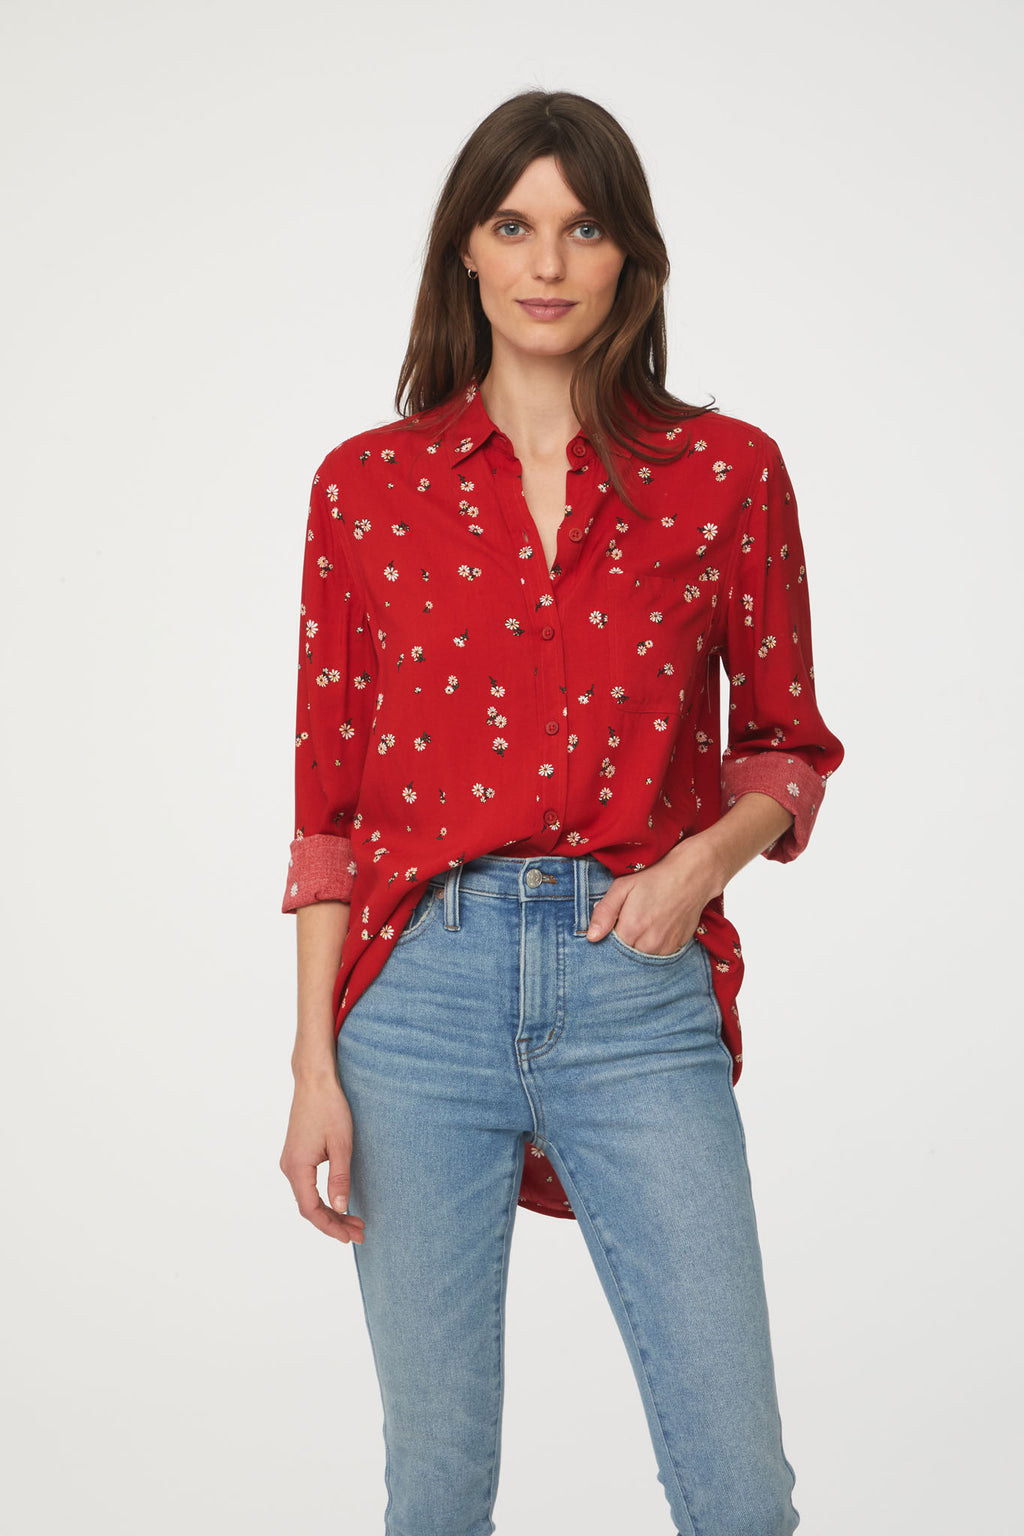 woman wearing a long sleeve, button-down, red floral shirt with single chest pocket